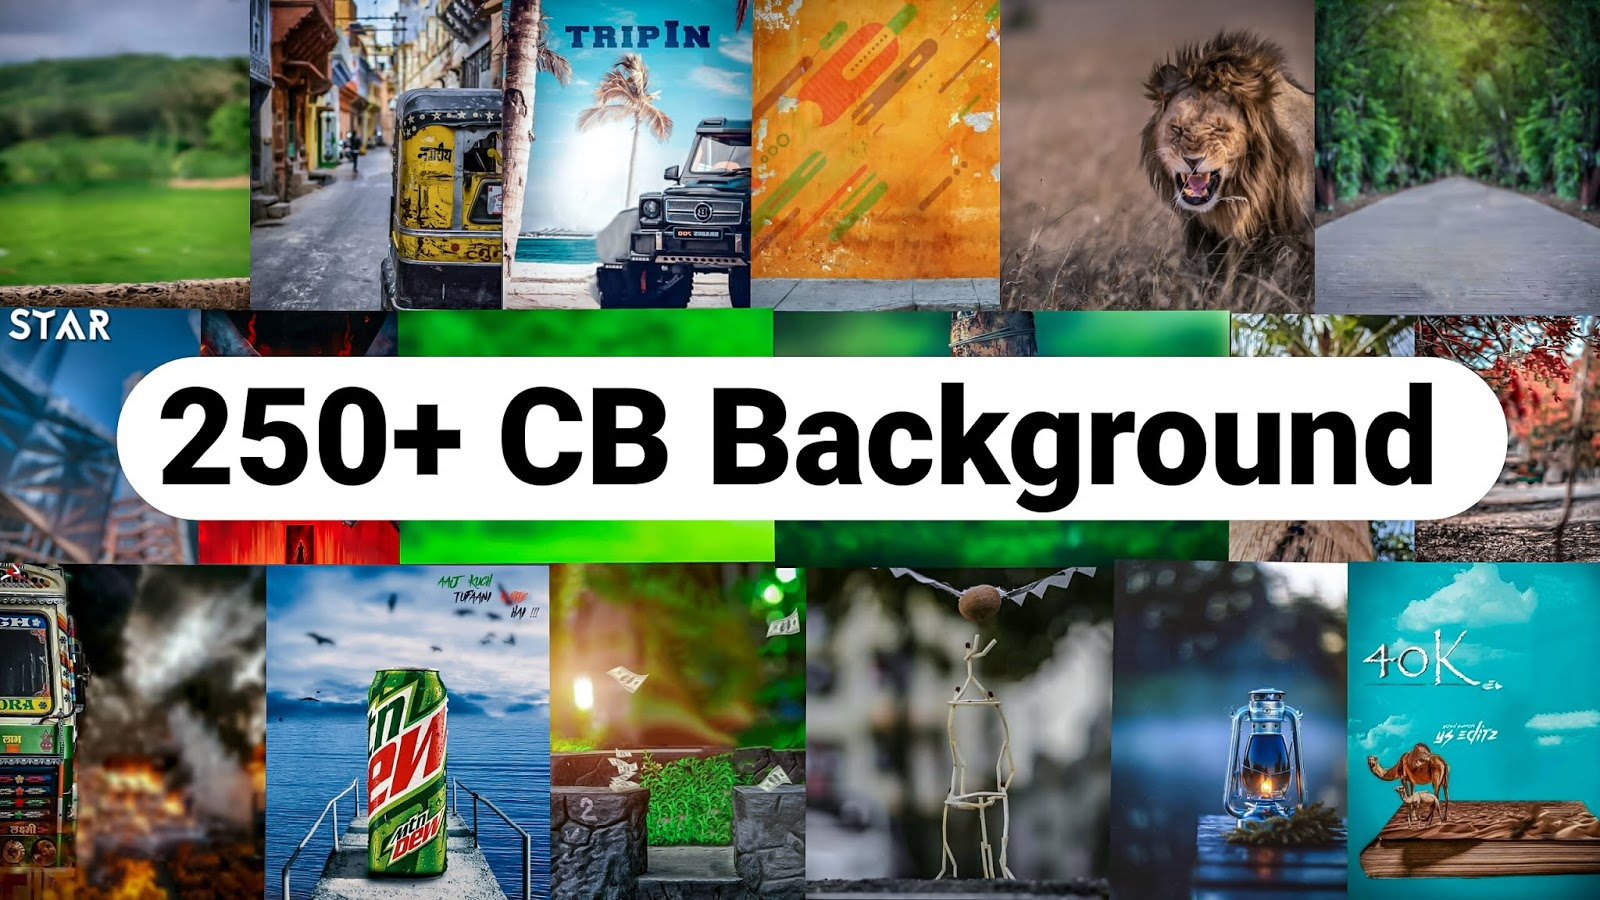 250+ CB Background Download Zip File - VeeRu Edits - VEERU EDITS